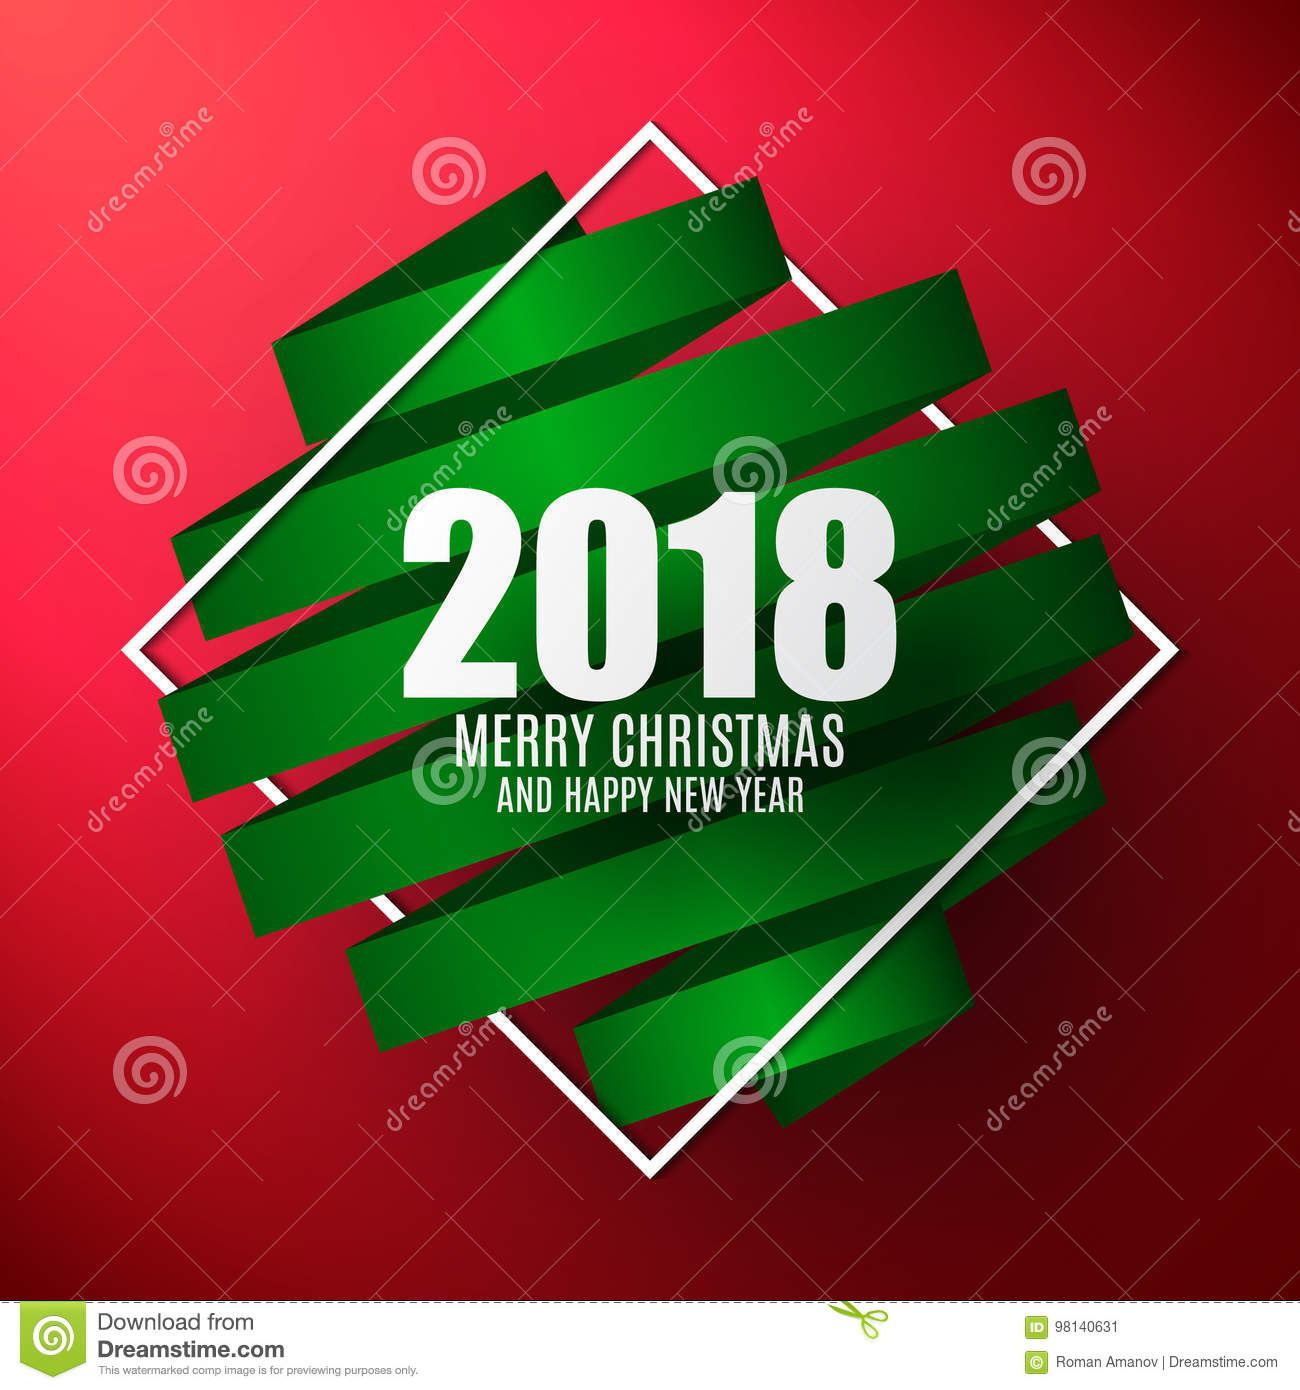 2018 vector template merry christmas and happy new year background